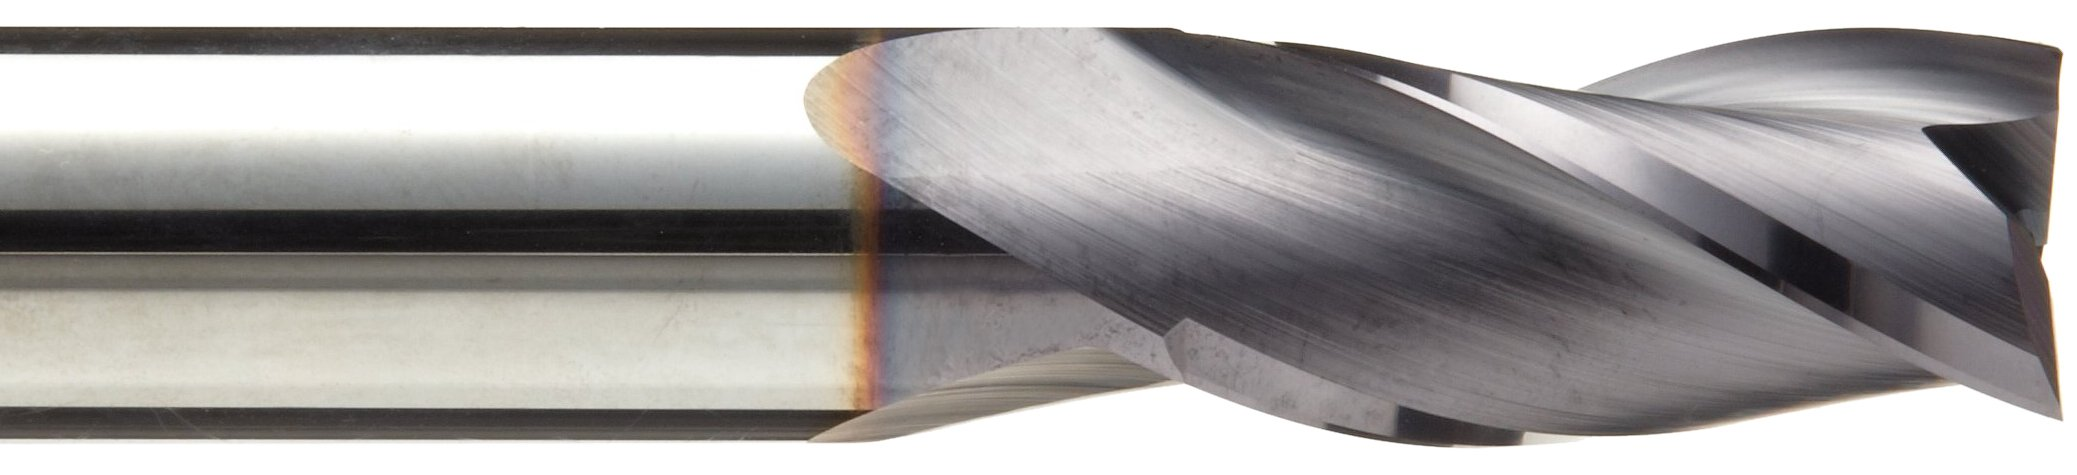 Niagara Cutter N86026 Carbide Square Nose End Mill, Inch, TiAlN Finish, Roughing and Finishing Cut, 30 Degree Helix, 3 Flutes, 3'' Overall Length, 0.500'' Cutting Diameter, 0.500'' Shank Diameter by Niagara Cutter (Image #2)